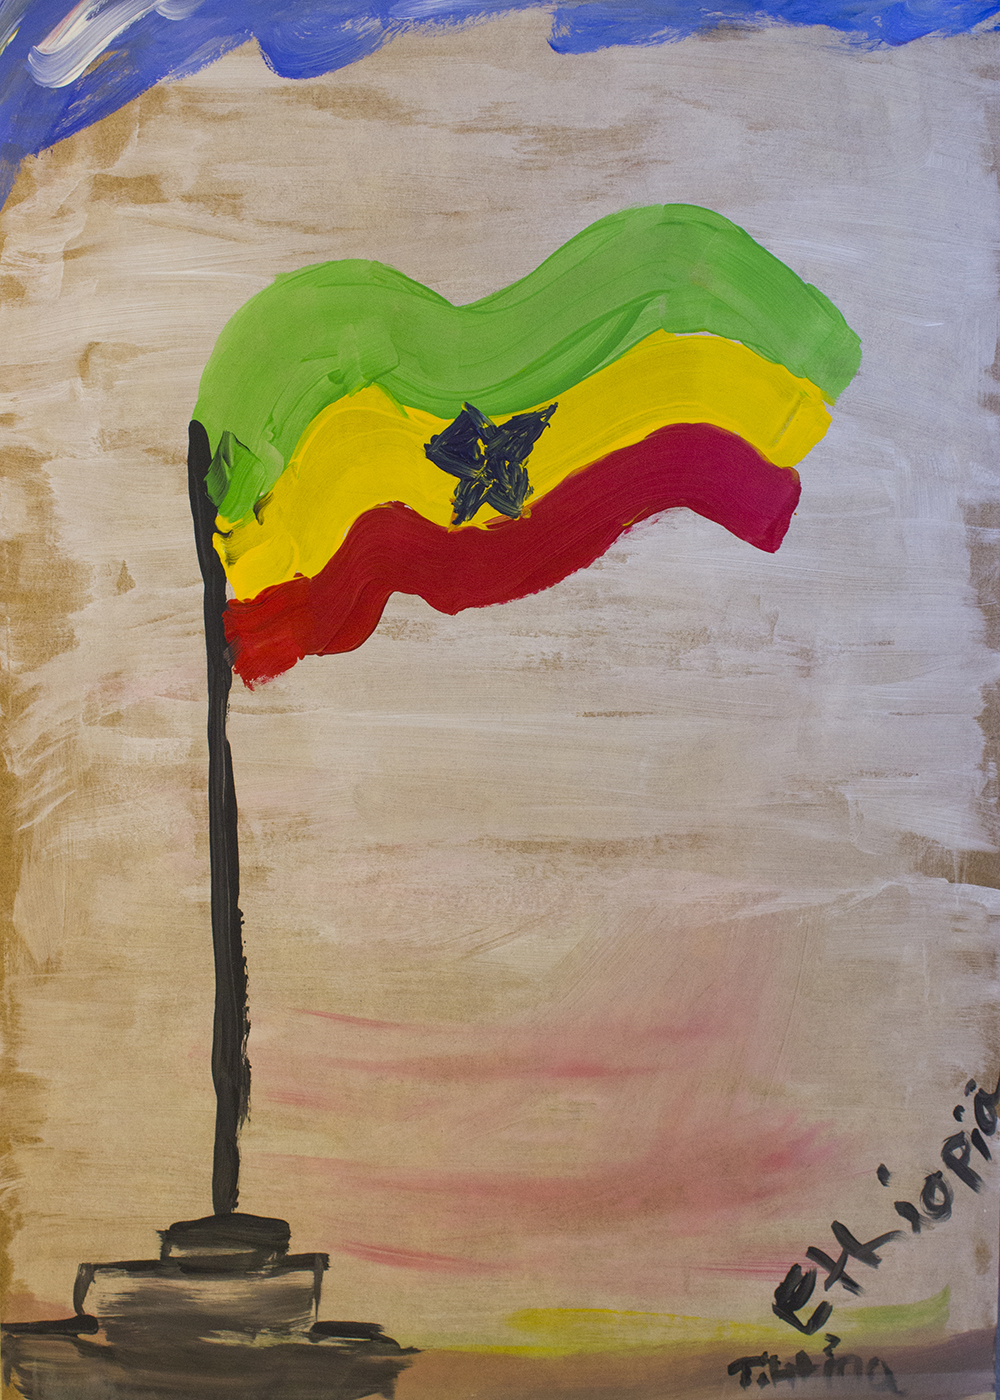 Most countries in Africa have these three colours in some ways. Green symbolises life. Yellow symbolises hope. And red is the blood of the people. - Tihtina, Ethiopia, Norway